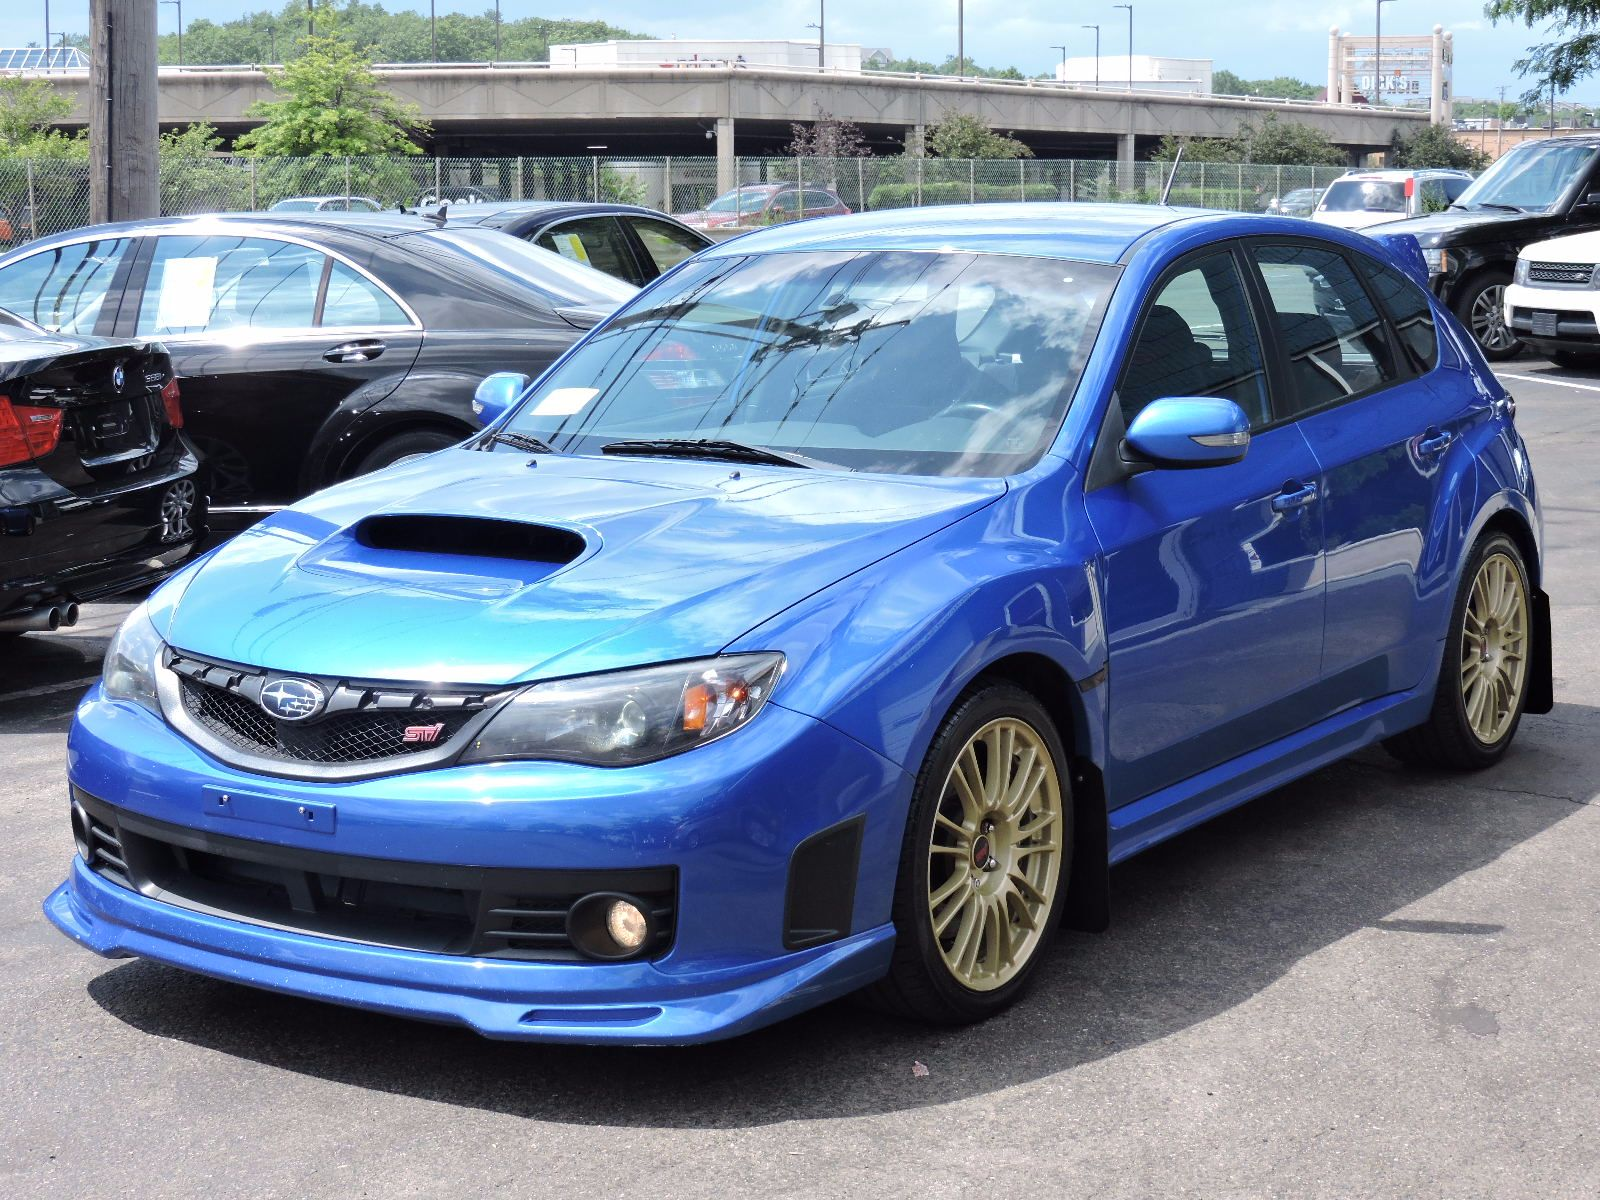 used 2010 subaru impreza wrx wrx sti at saugus auto mall. Black Bedroom Furniture Sets. Home Design Ideas